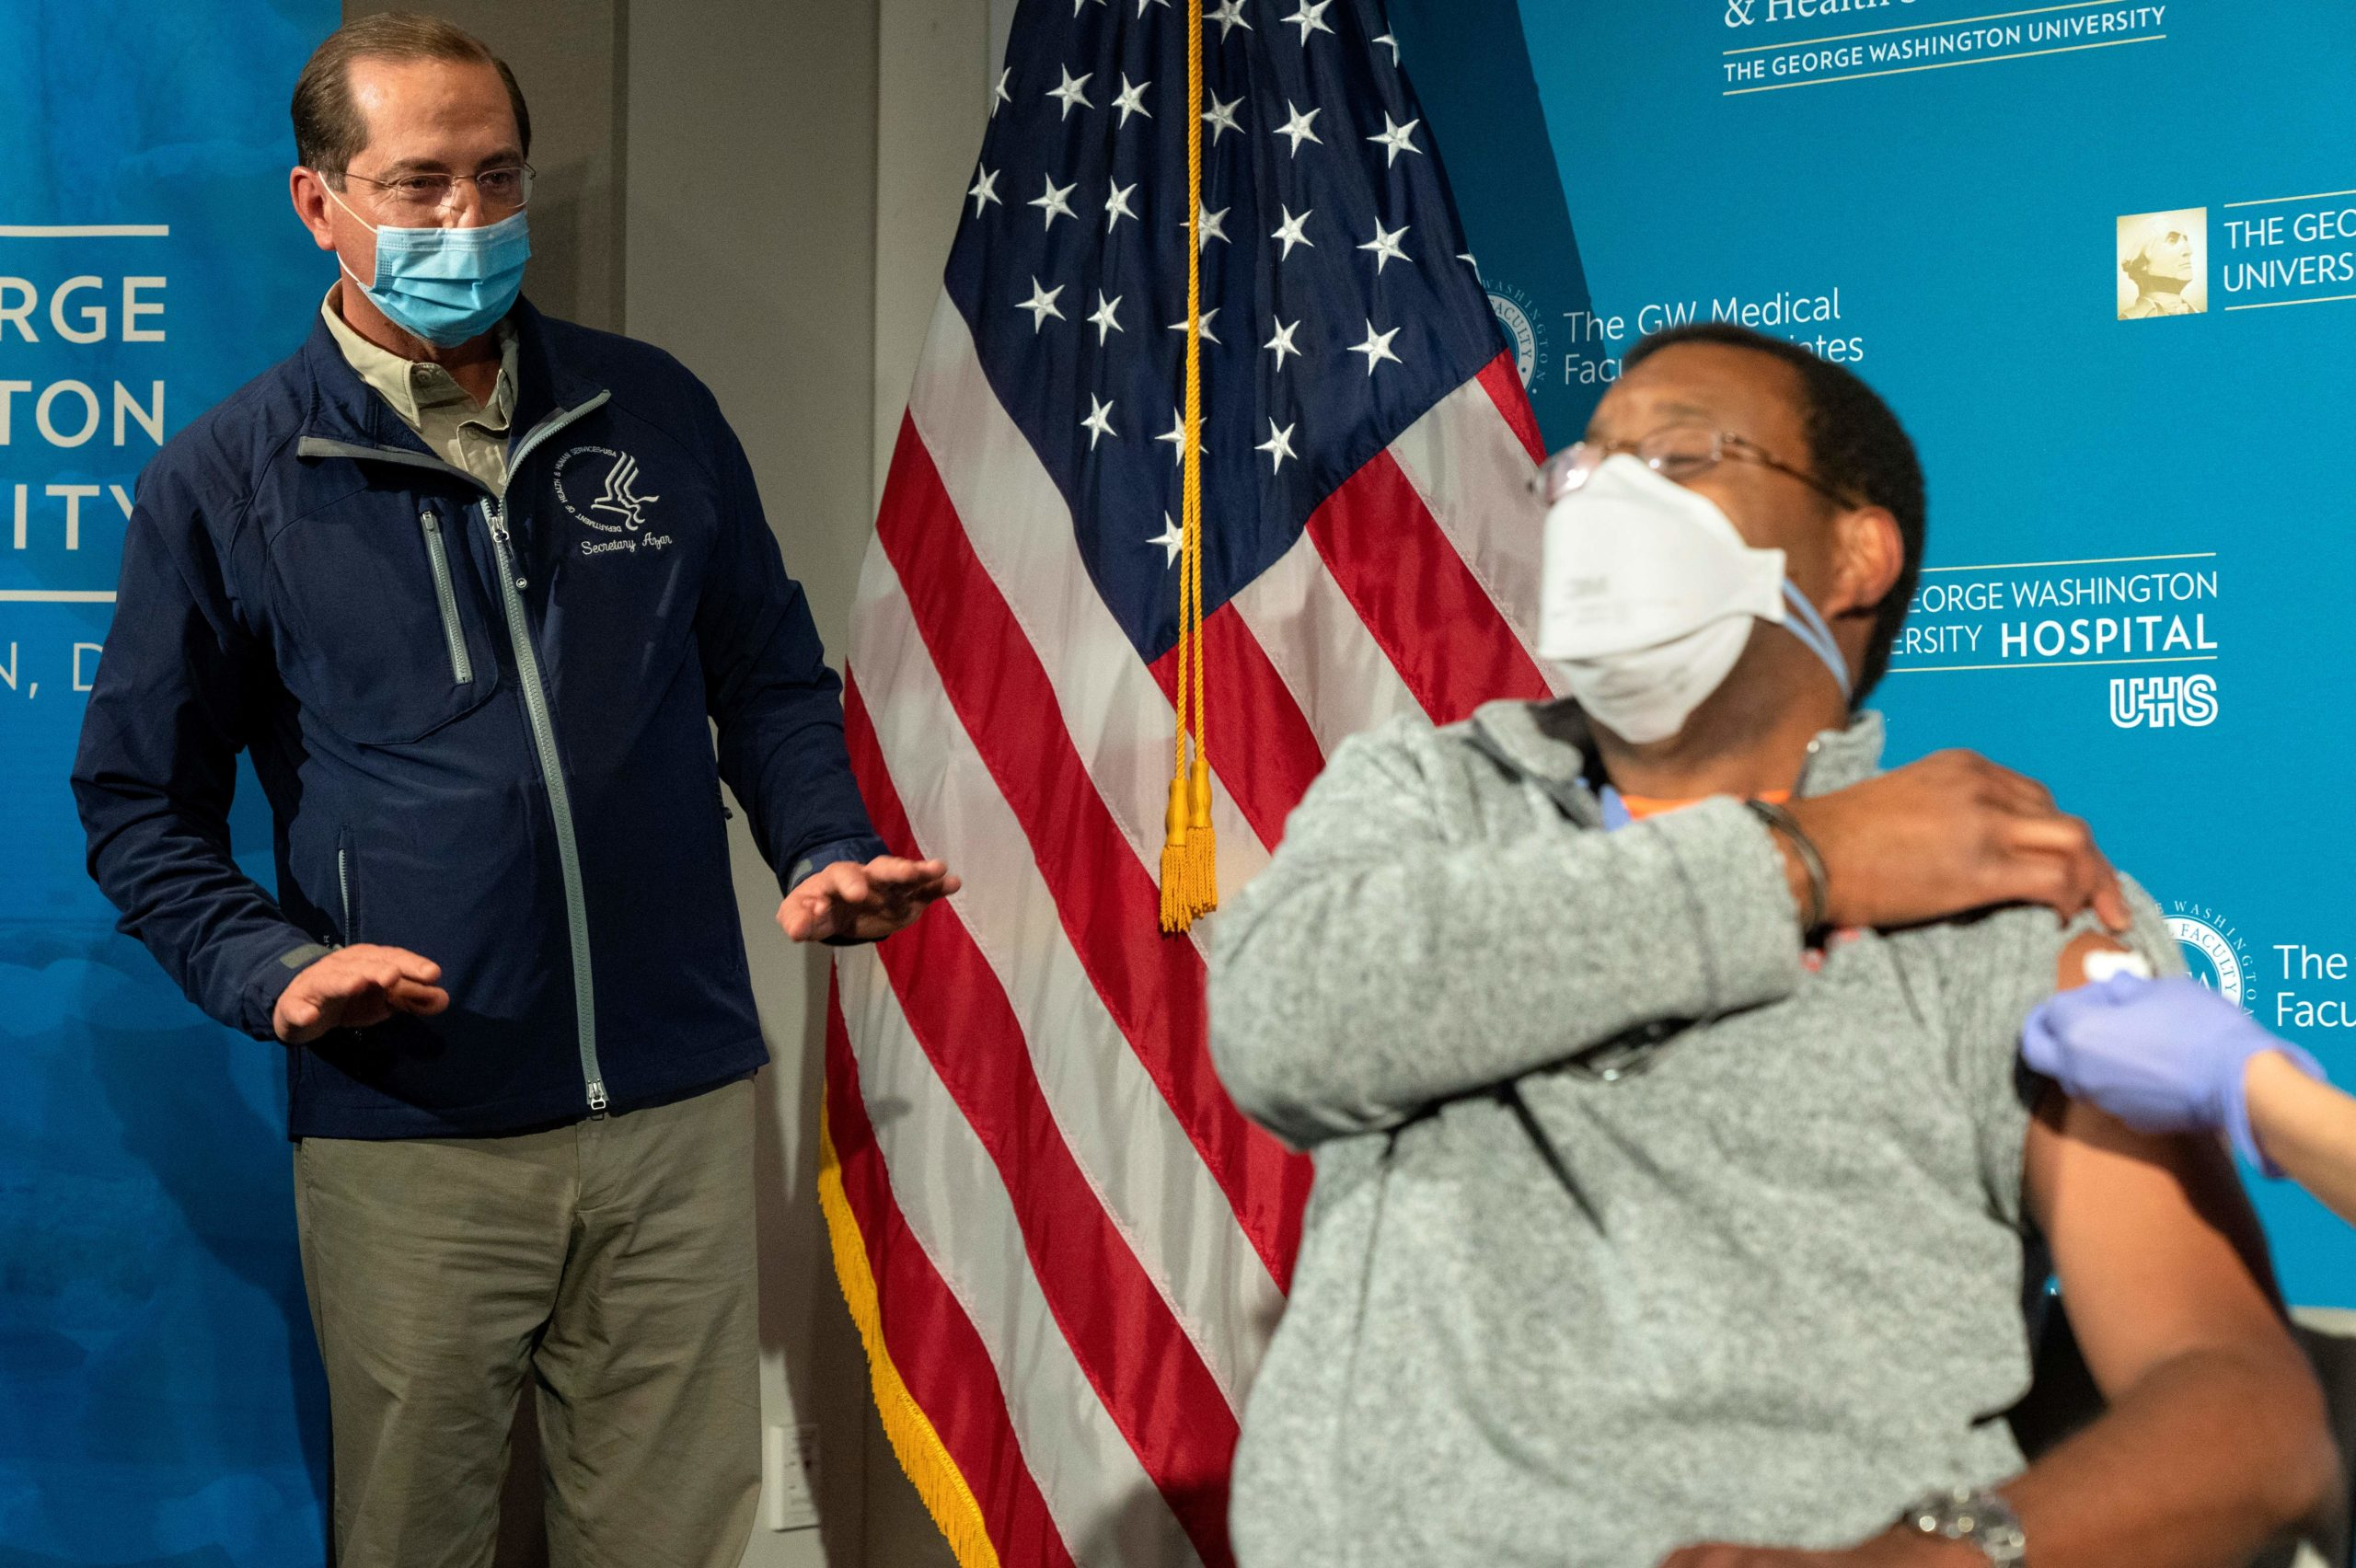 Health and Human Services Sec. Alex Azar watches as a George Washington University Hospital anesthesiologist receives the coronavirus vaccine on Monday. (Jacquelyn Martin/Pool/AFP via Getty Images)